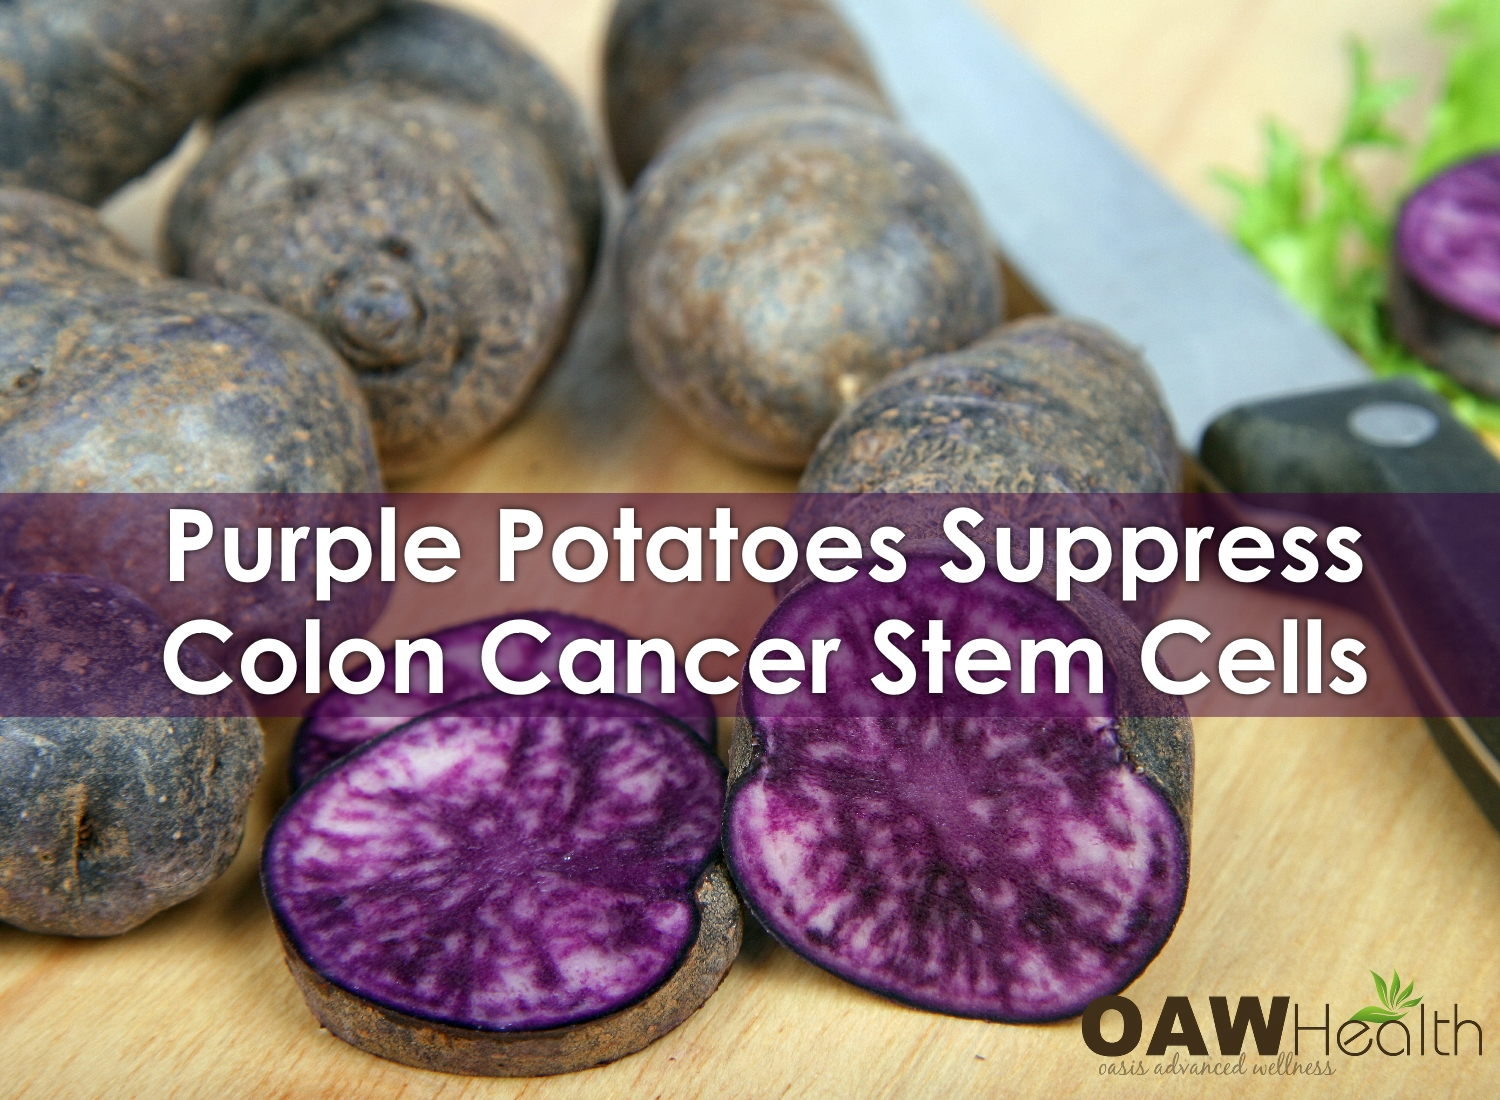 Purple Potatoes Suppress Colon Cancer Stem Cells